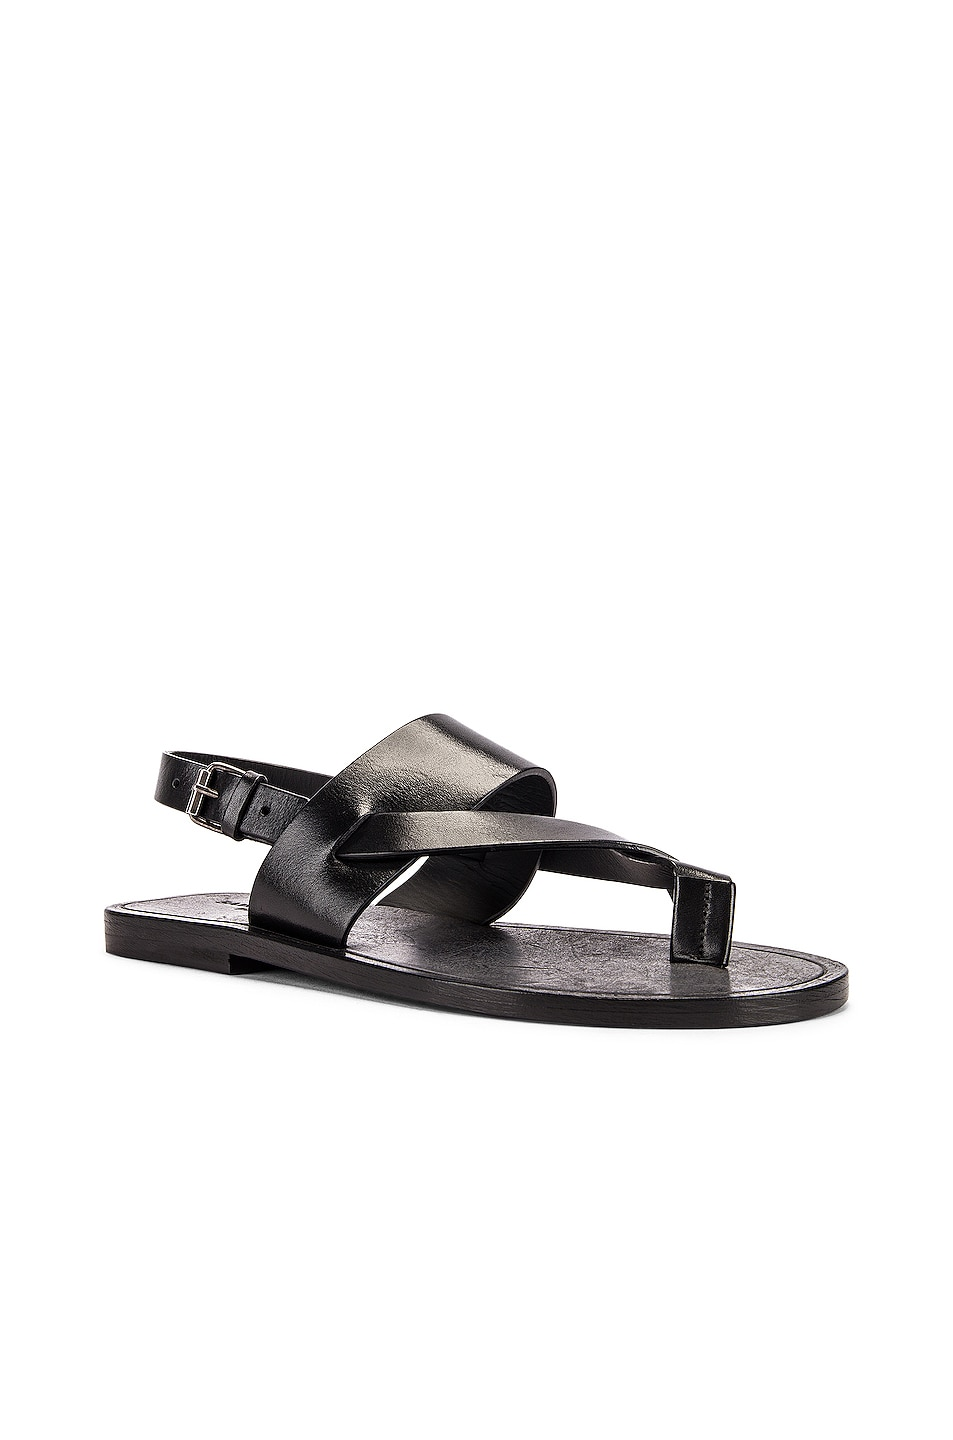 Image 2 of Saint Laurent Culver Buckle Sandals in Black